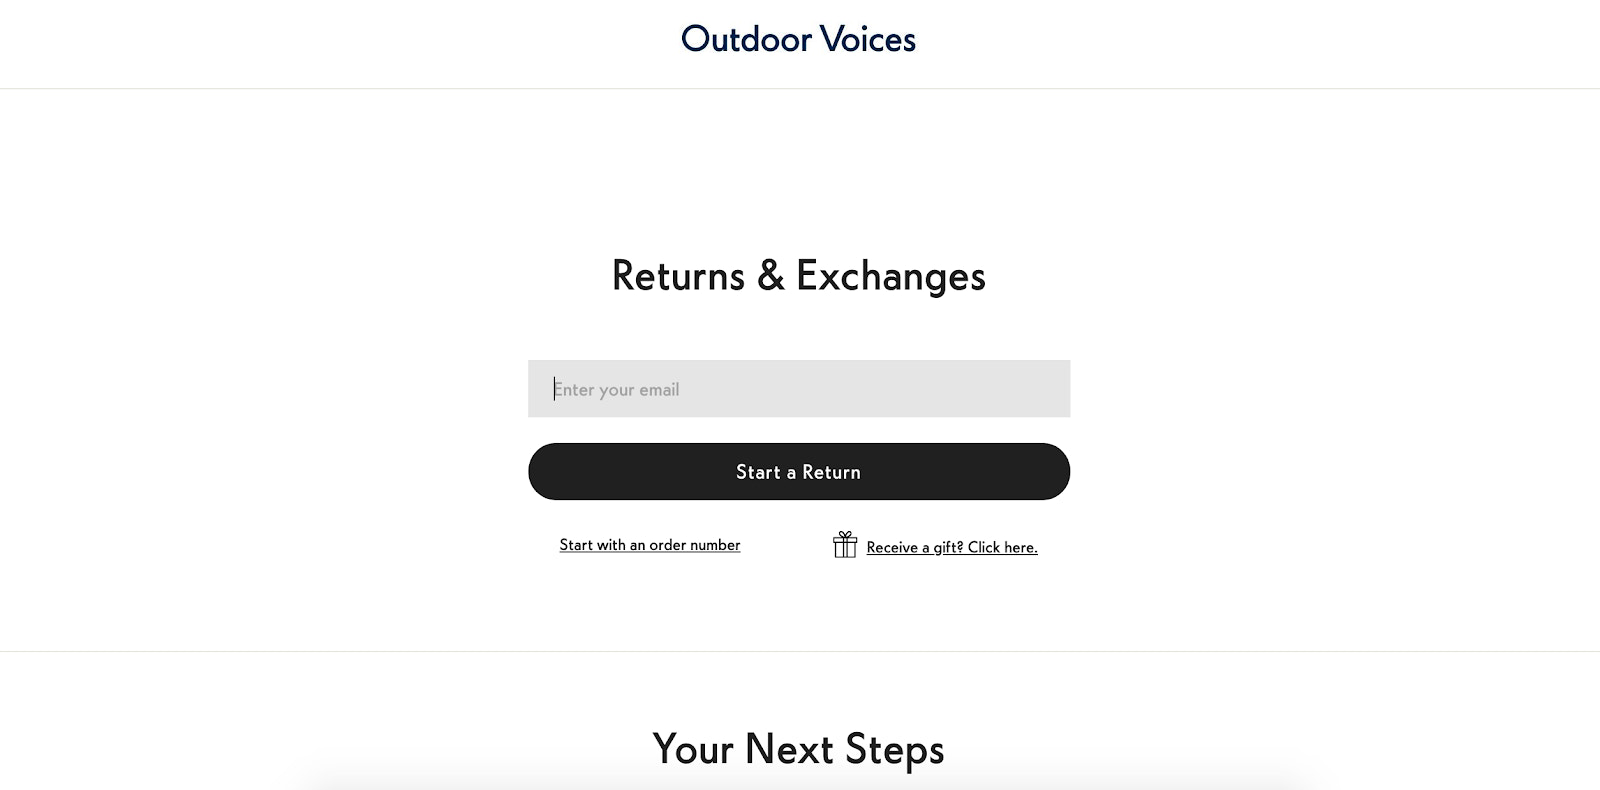 Outdoor Voices using Returnly